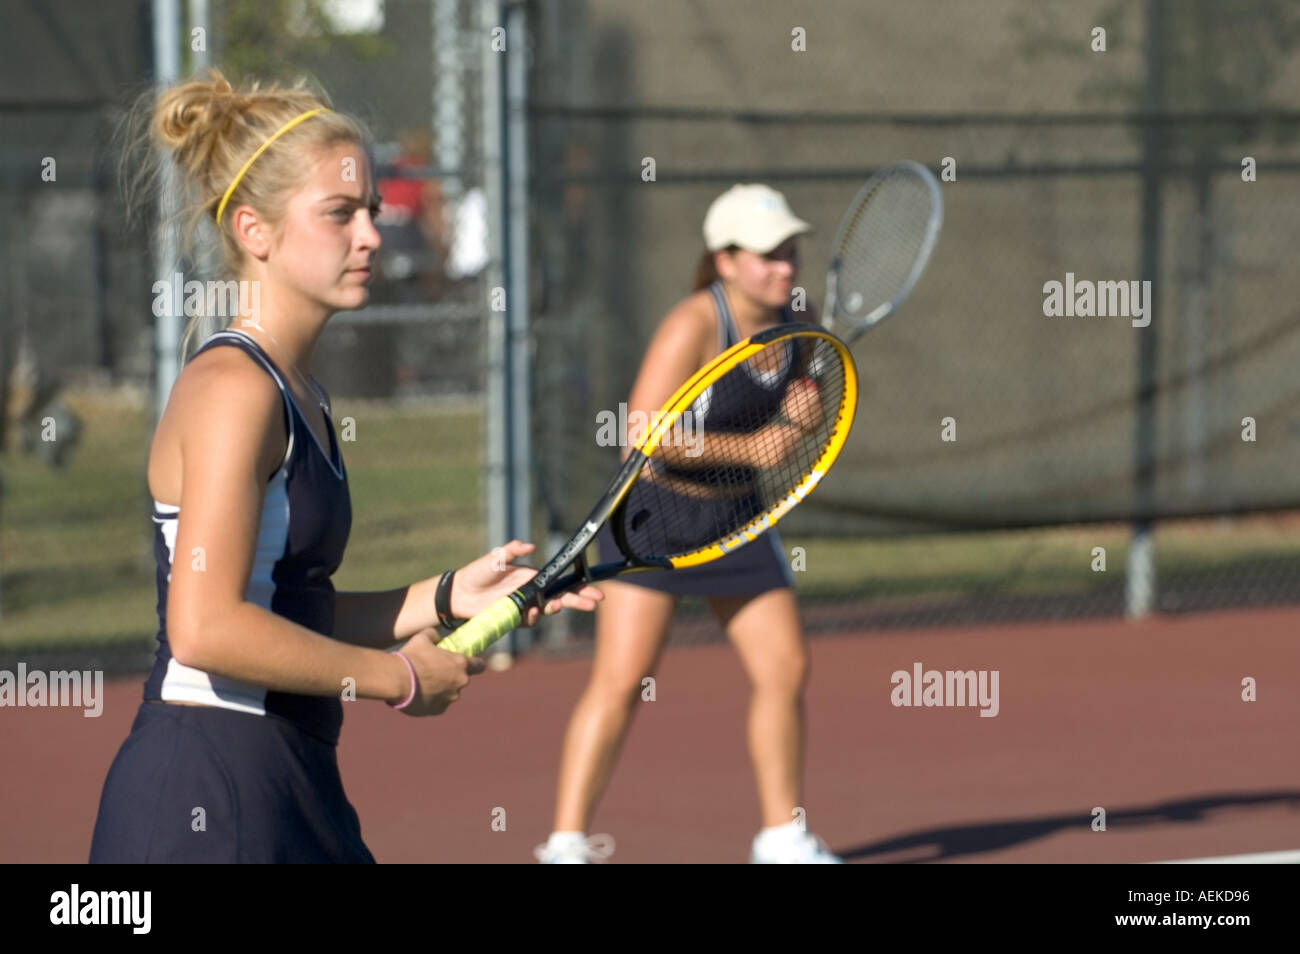 High School Tennis Match Stock Photo Alamy